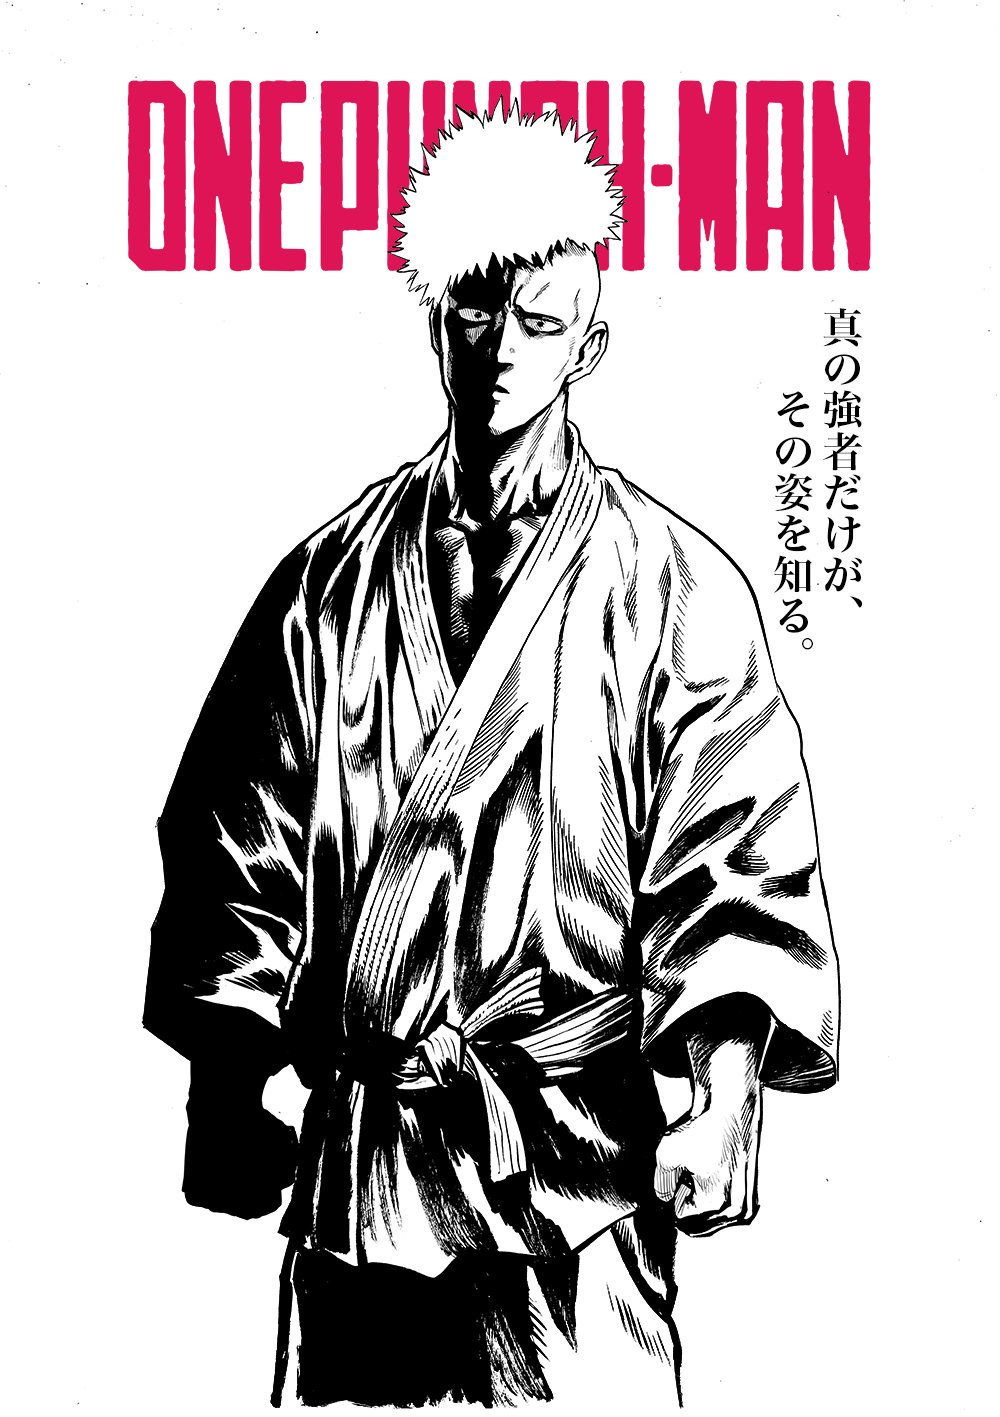 Request Can Someone Clean The Cover Chapter 64 Limit One Punch Man Manga One Punch Man Poster One Punch Man Funny